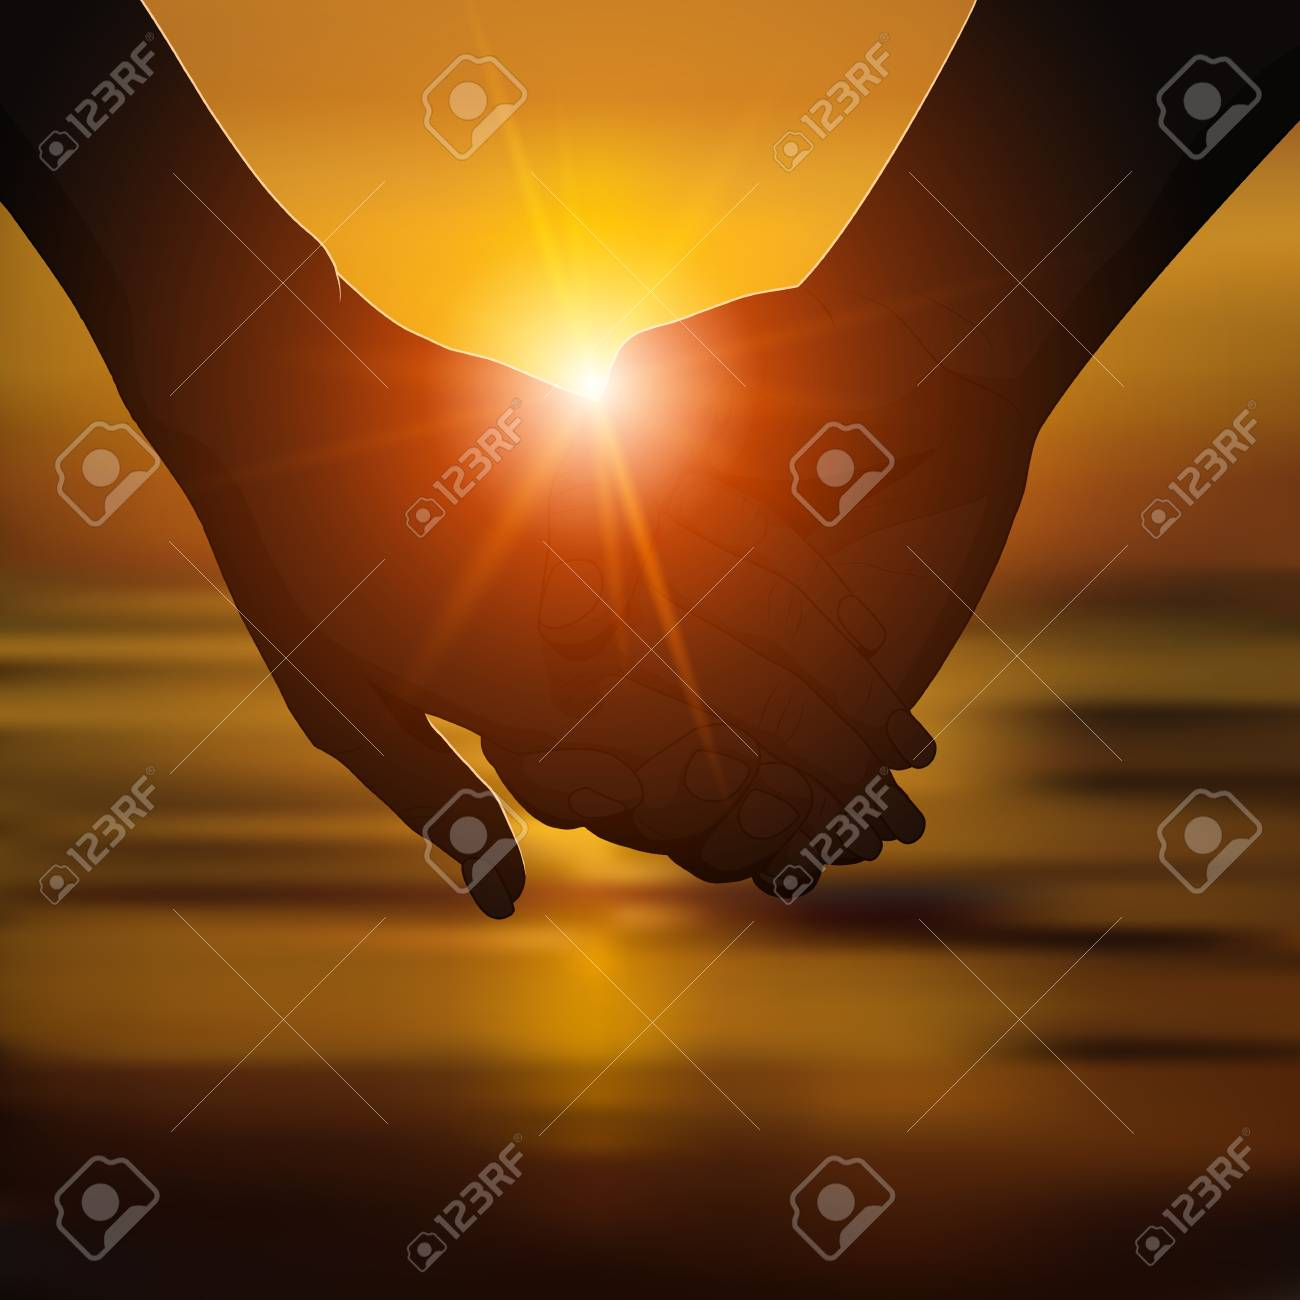 Silhouette Of Romantic Couple S Hands On The Beach At Sunset